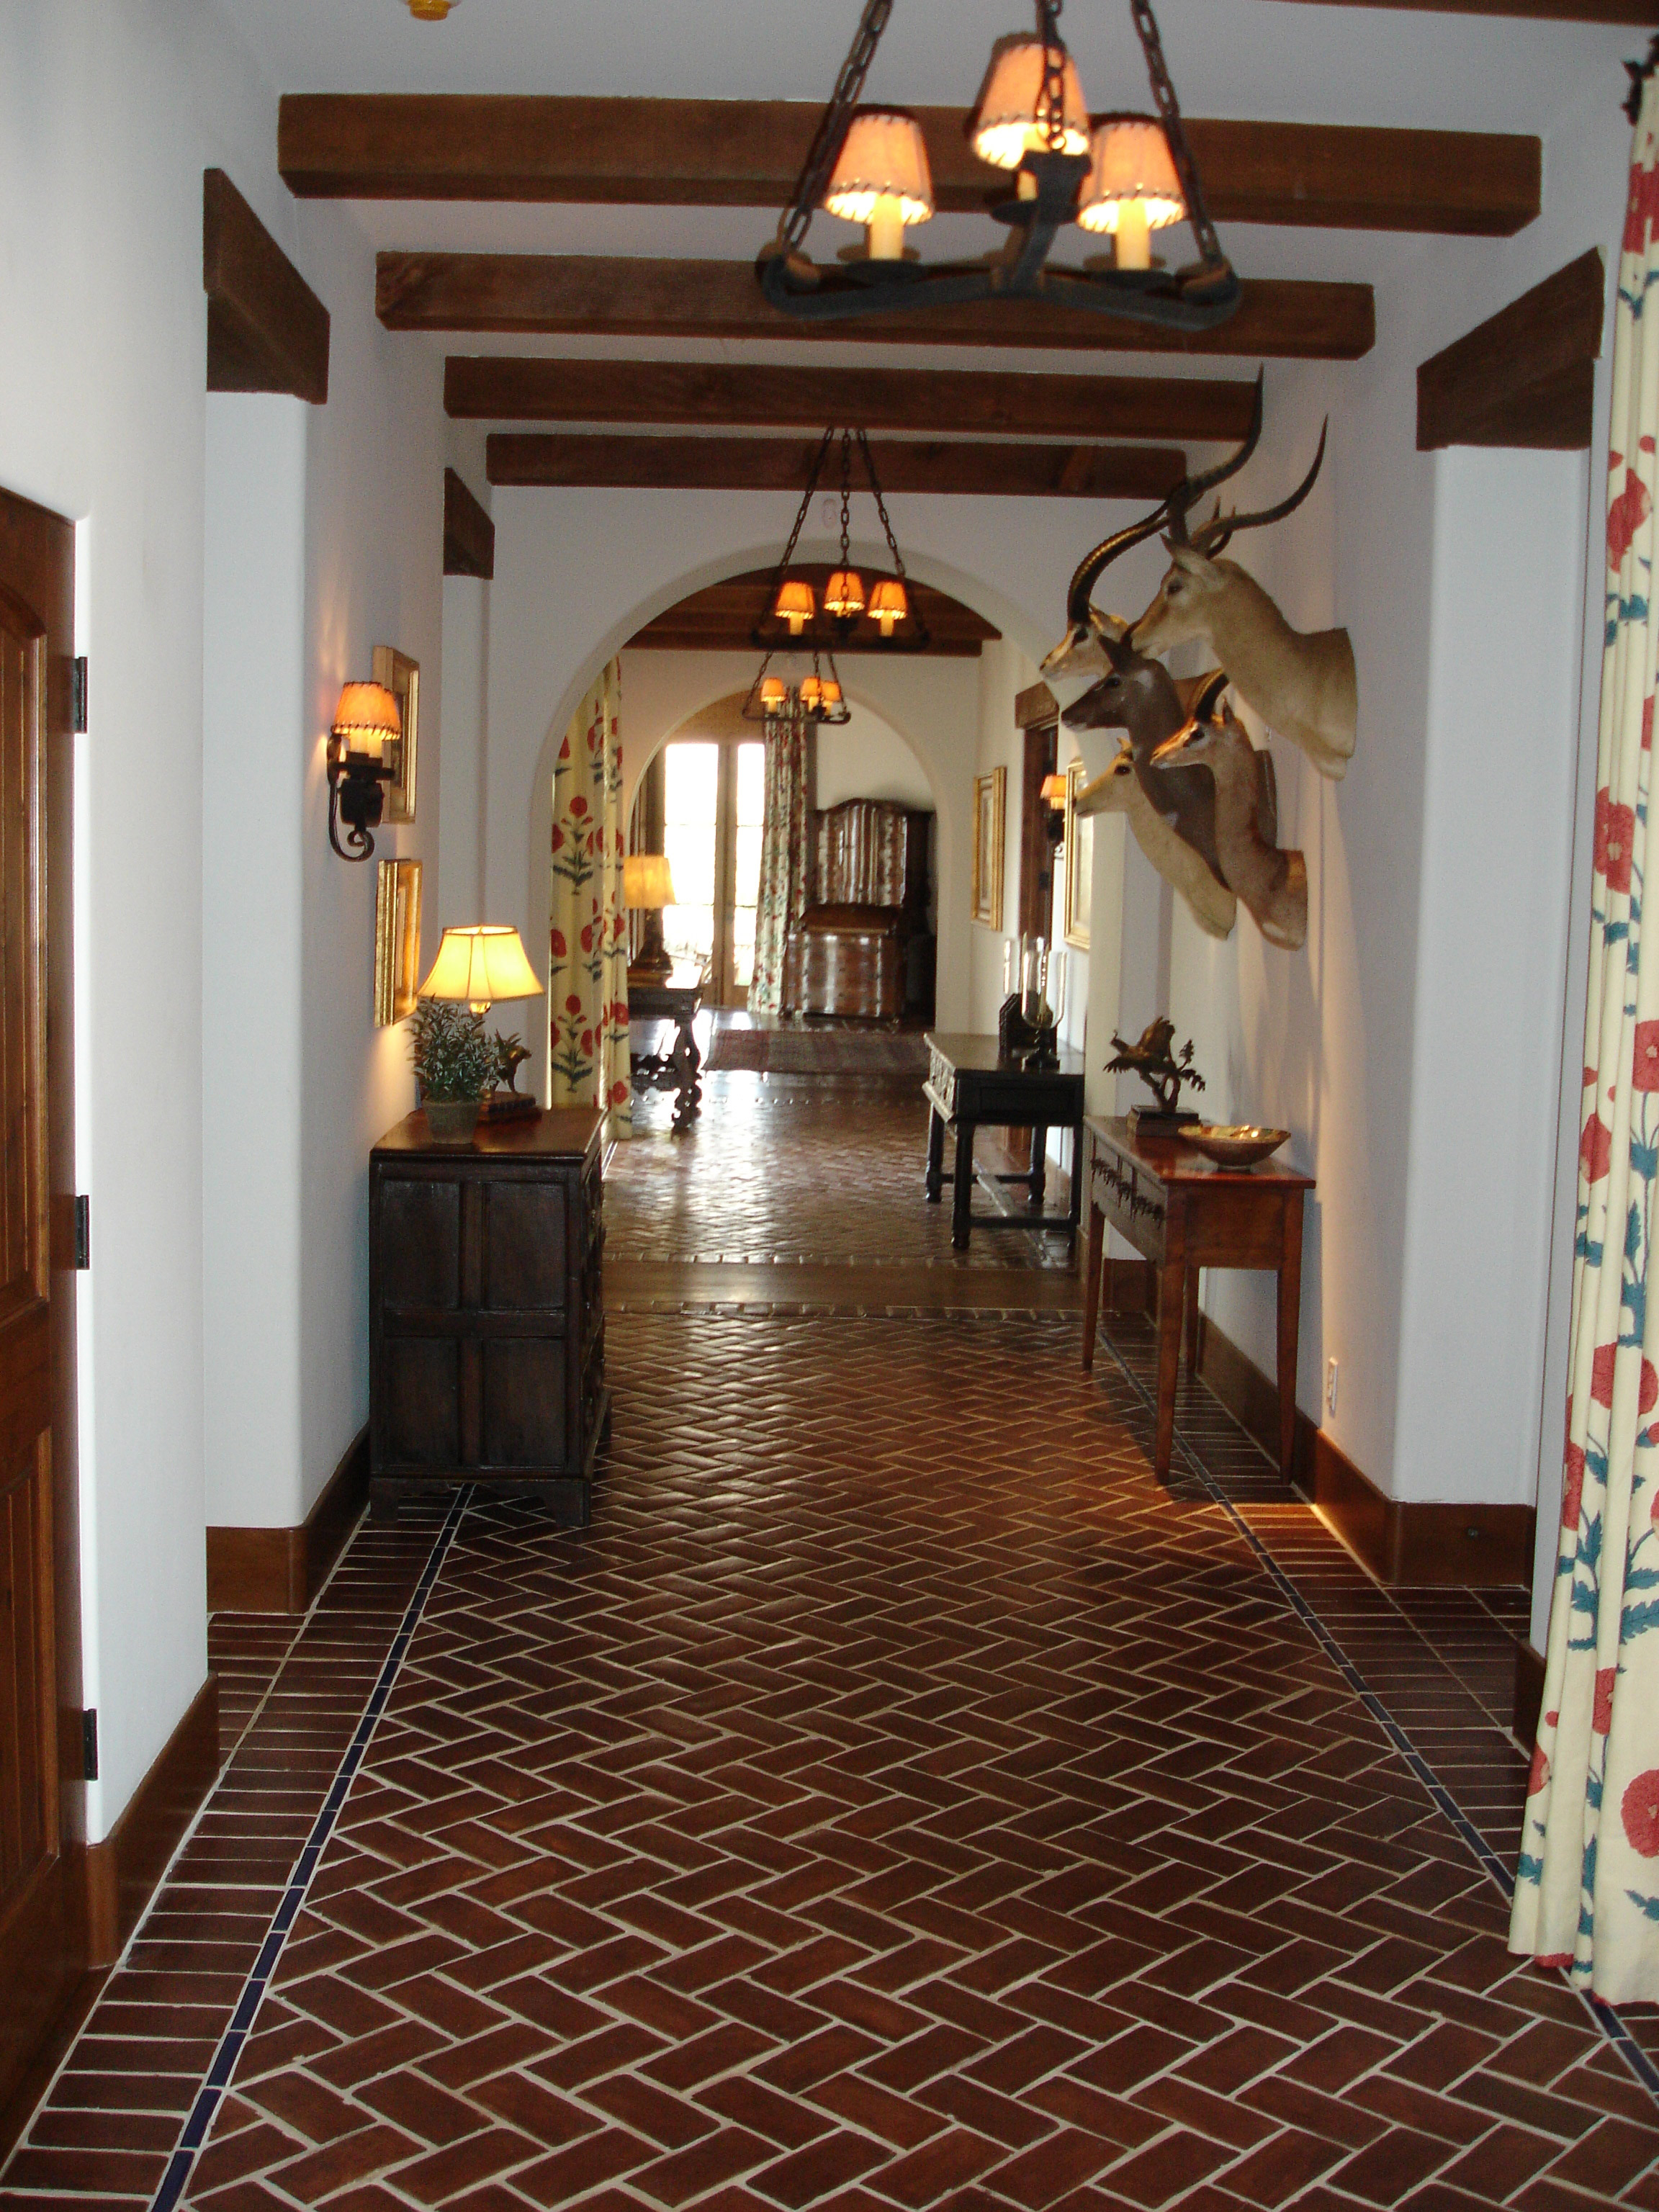 Saltillo Tiles  Before and After Images